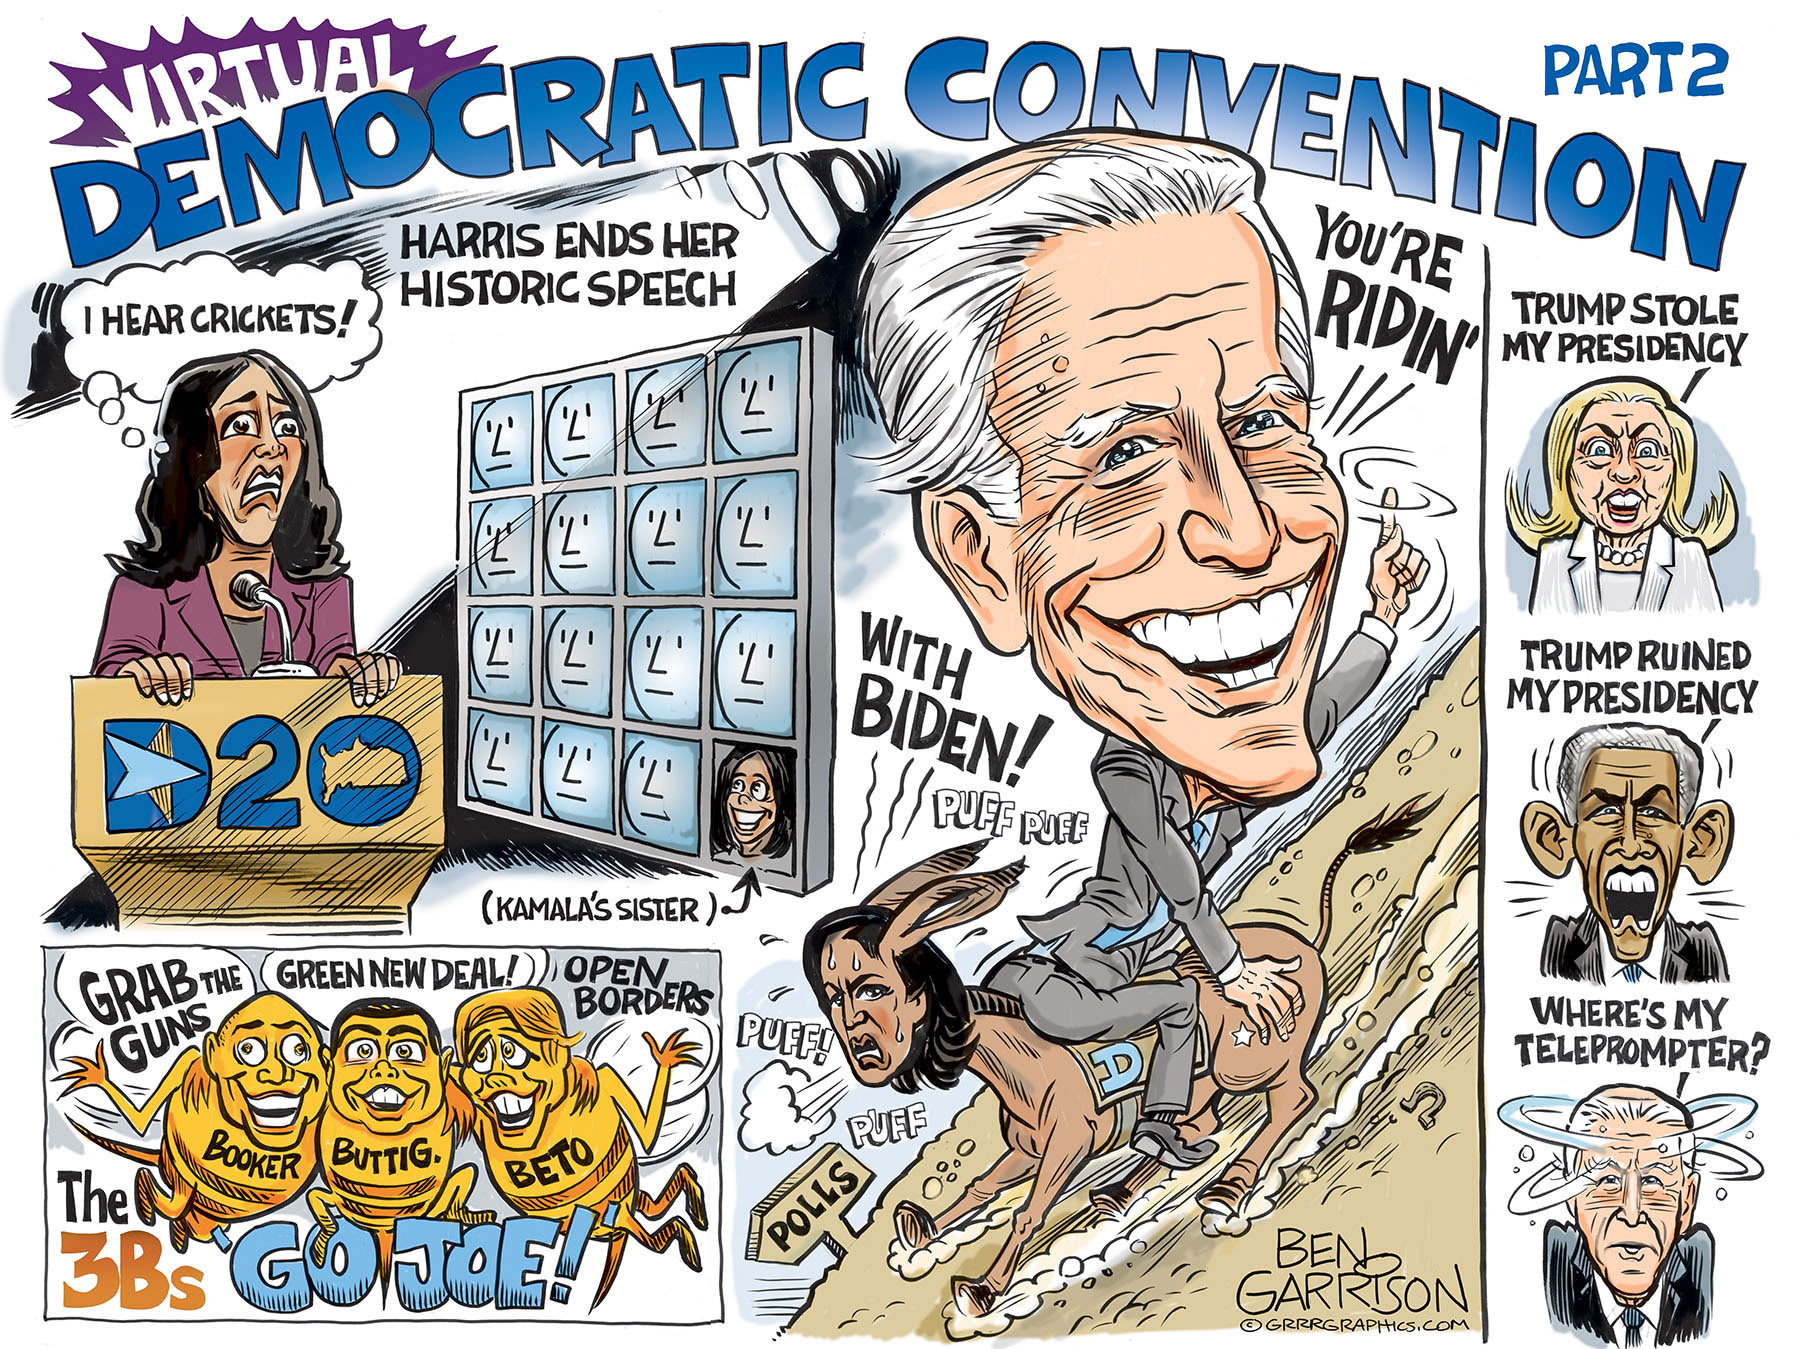 Virtual Democratic Convention 2020 Part 2 - Ben Garrison Cartoon